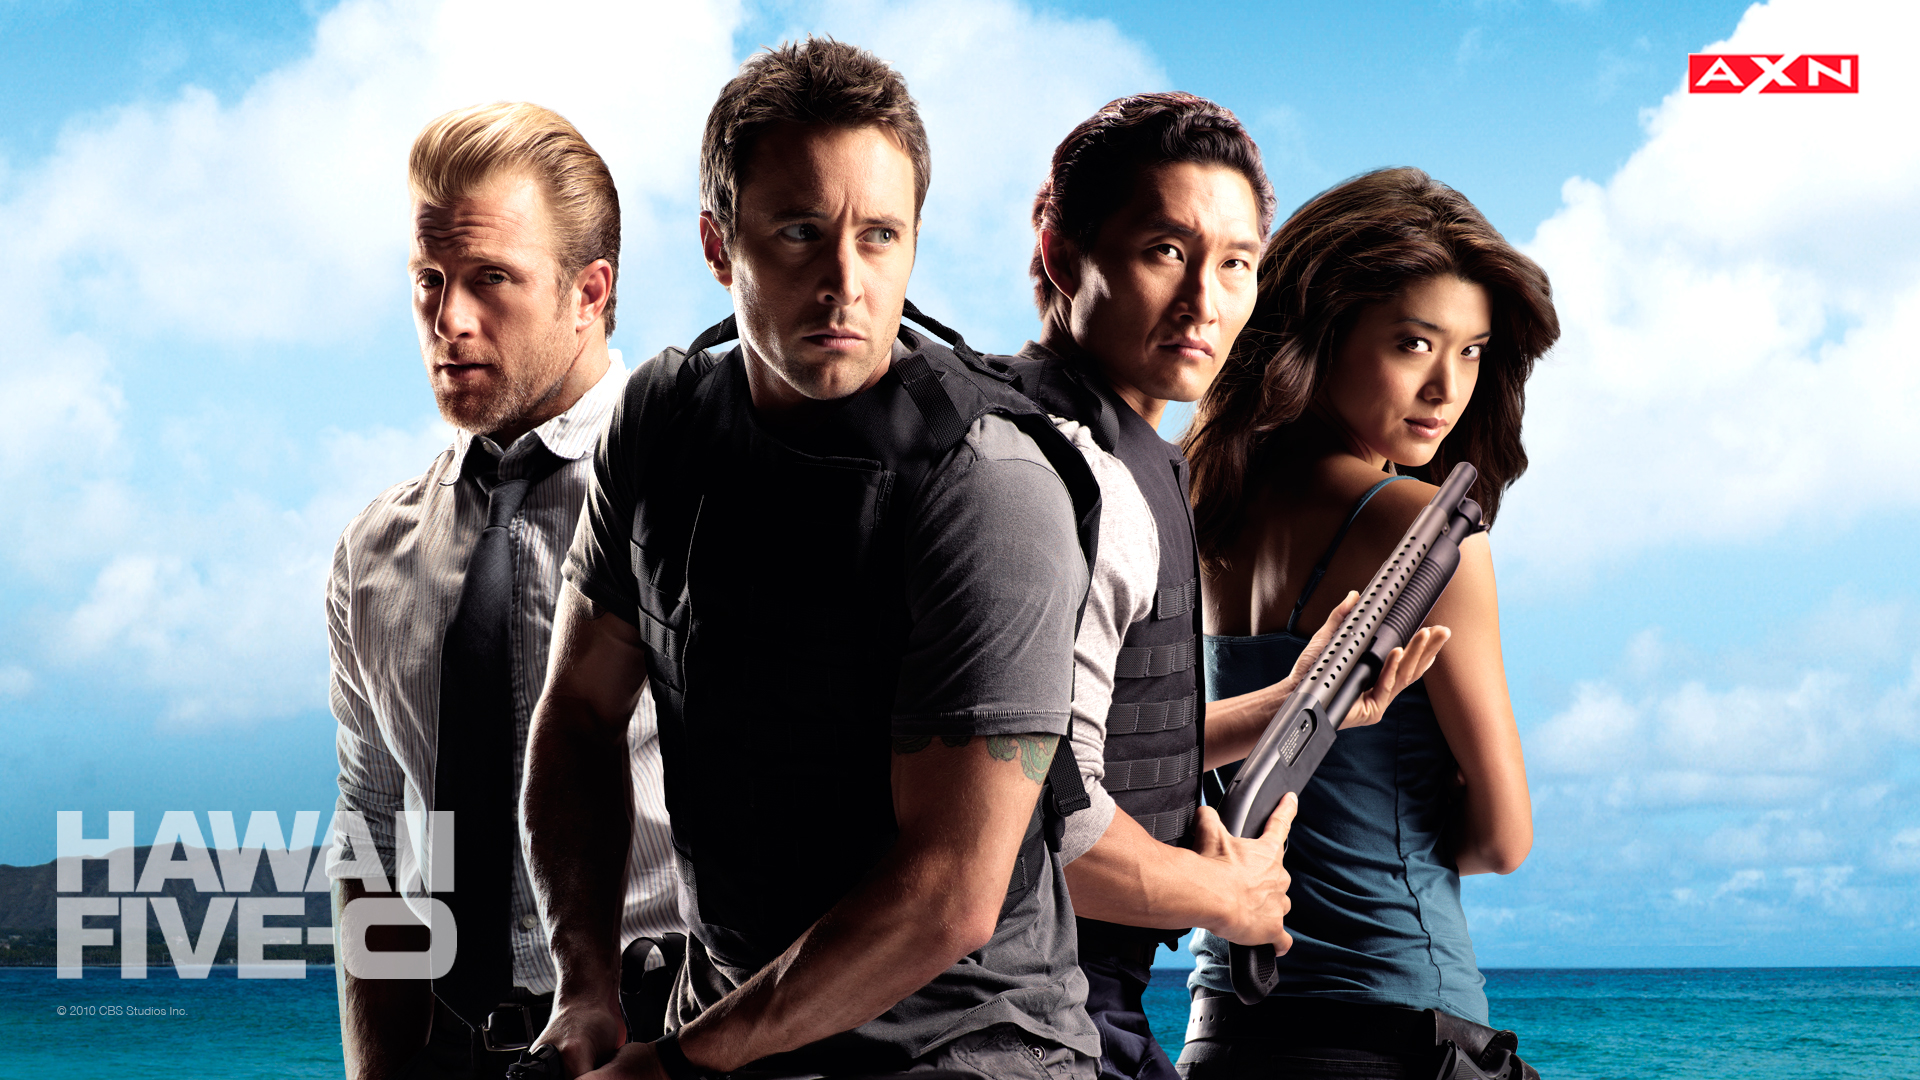 Free download Hawaii 5 0 [1920x1080] for your Desktop